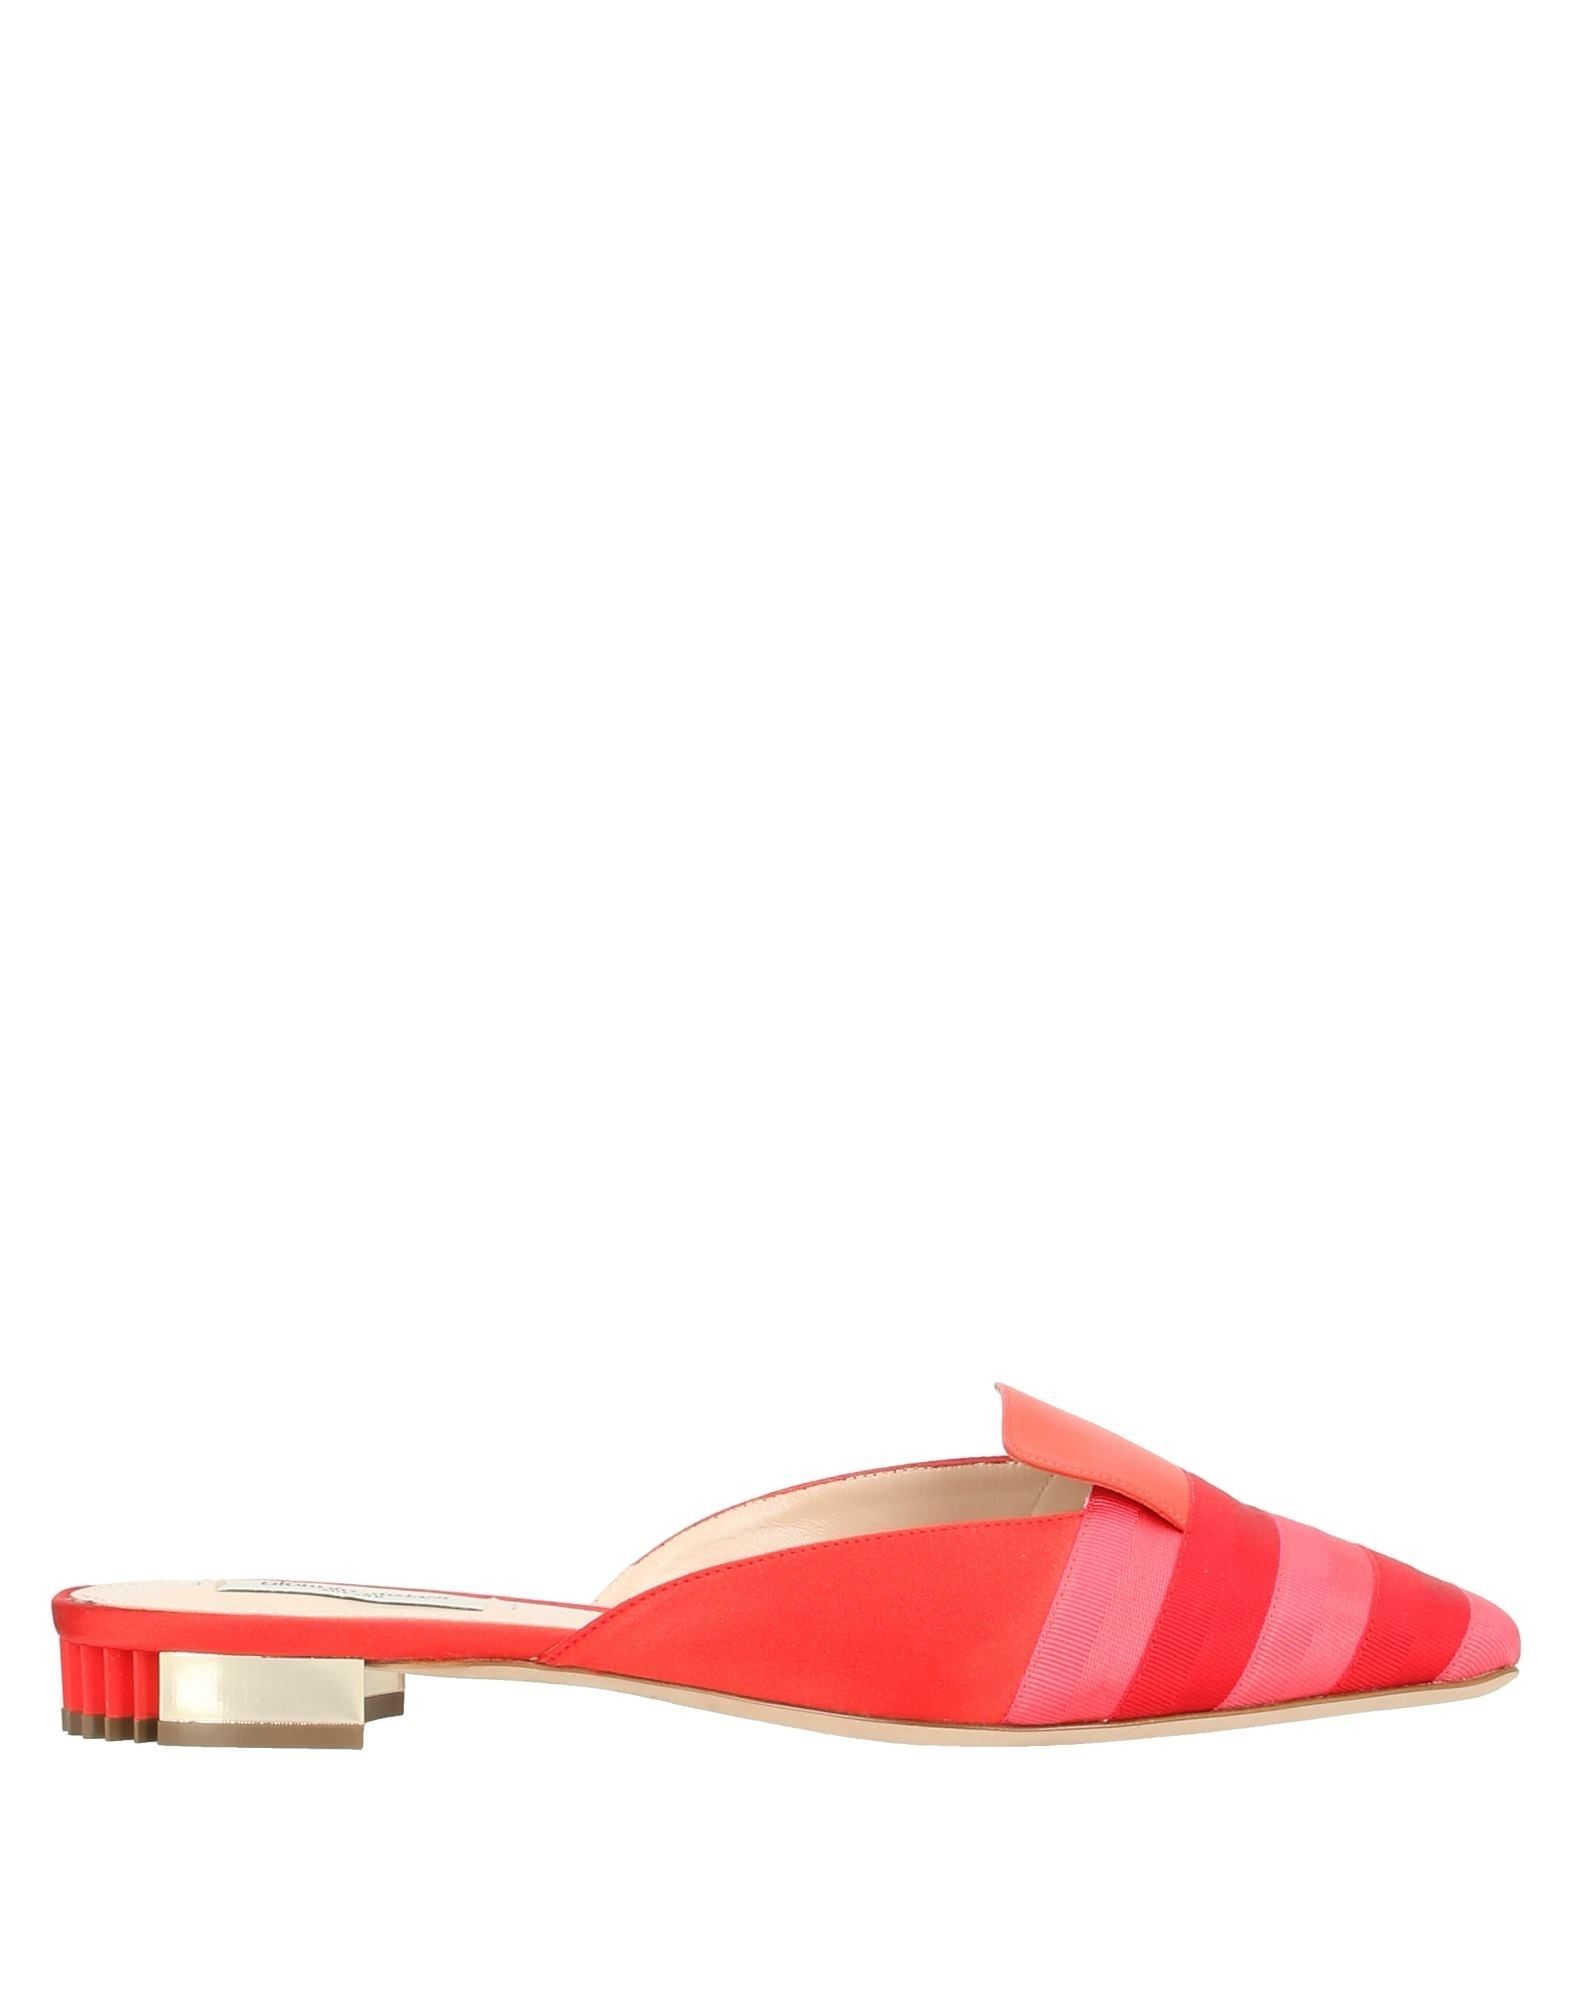 GIORGIO ARMANI Mules. grosgrain, no appliqués, stripes, square toeline, flat, leather lining, leather sole, contains non-textile parts of animal origin. 65% Viscose, 20% Cotton, 15% Mulberry silk, Lambskin